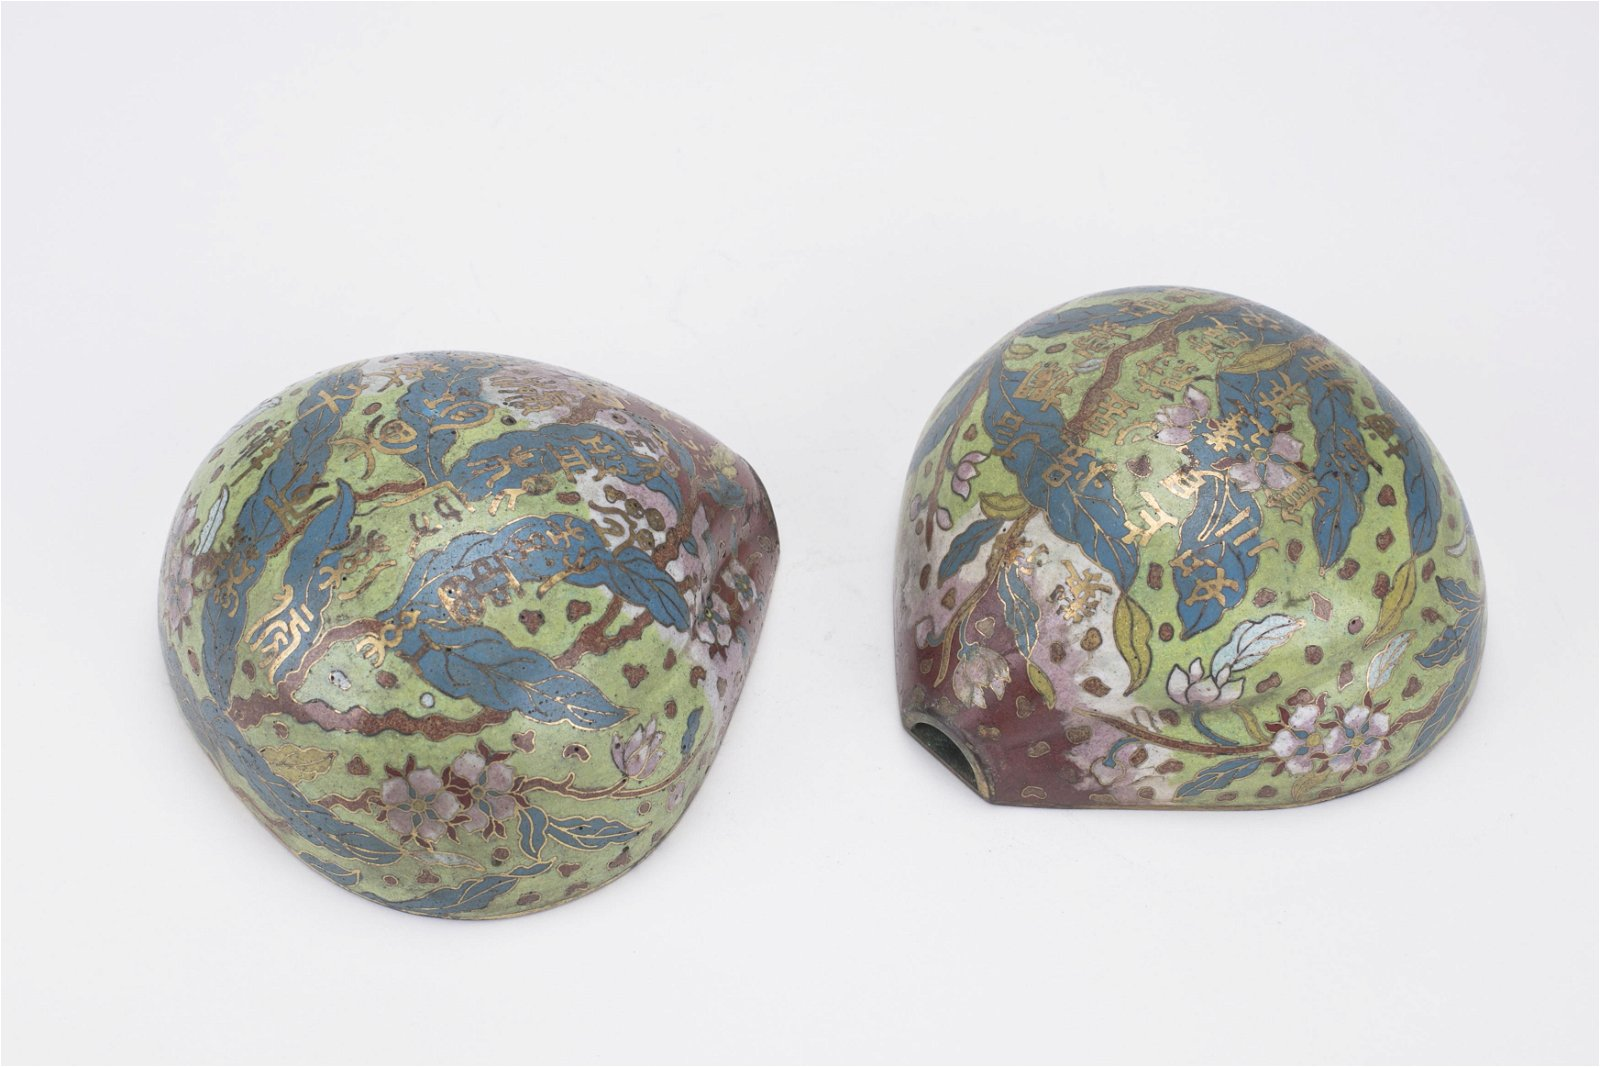 2 Chinese Cloisonne & Gilt Bronze Peach Wall Vases